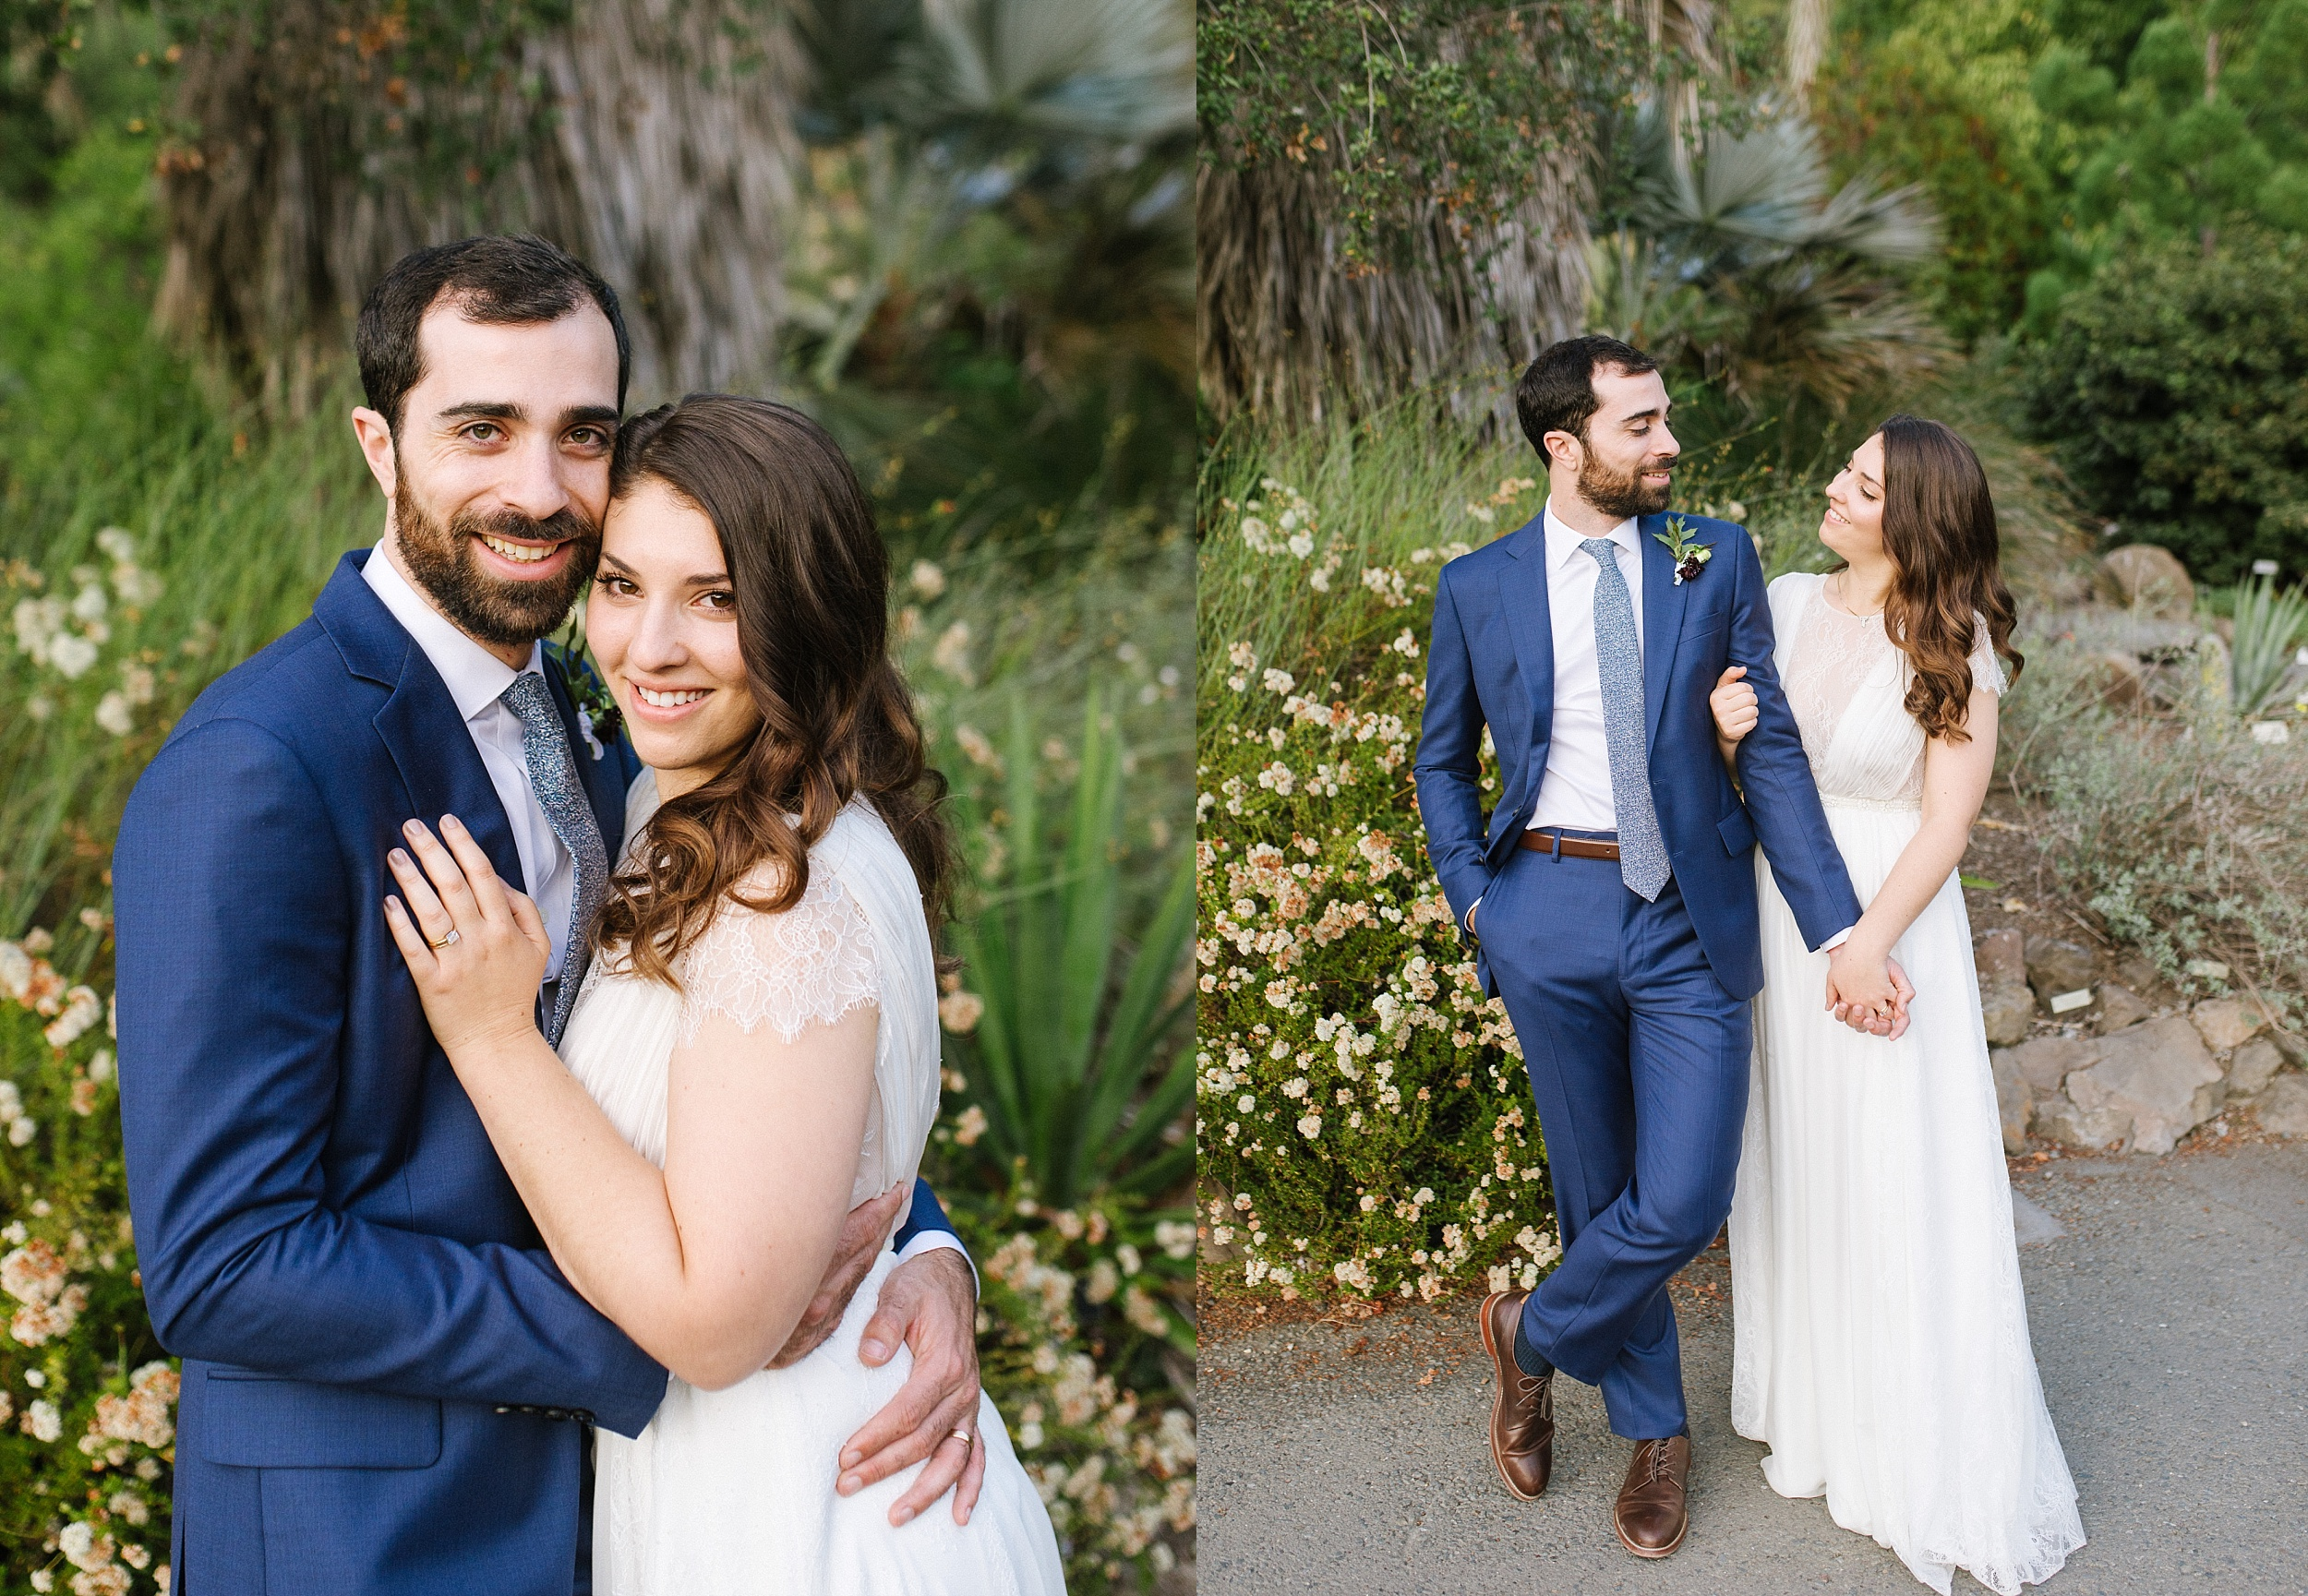 noahhannah_redwoods_botanical_wedding_berkeley_cdp_0022.jpg